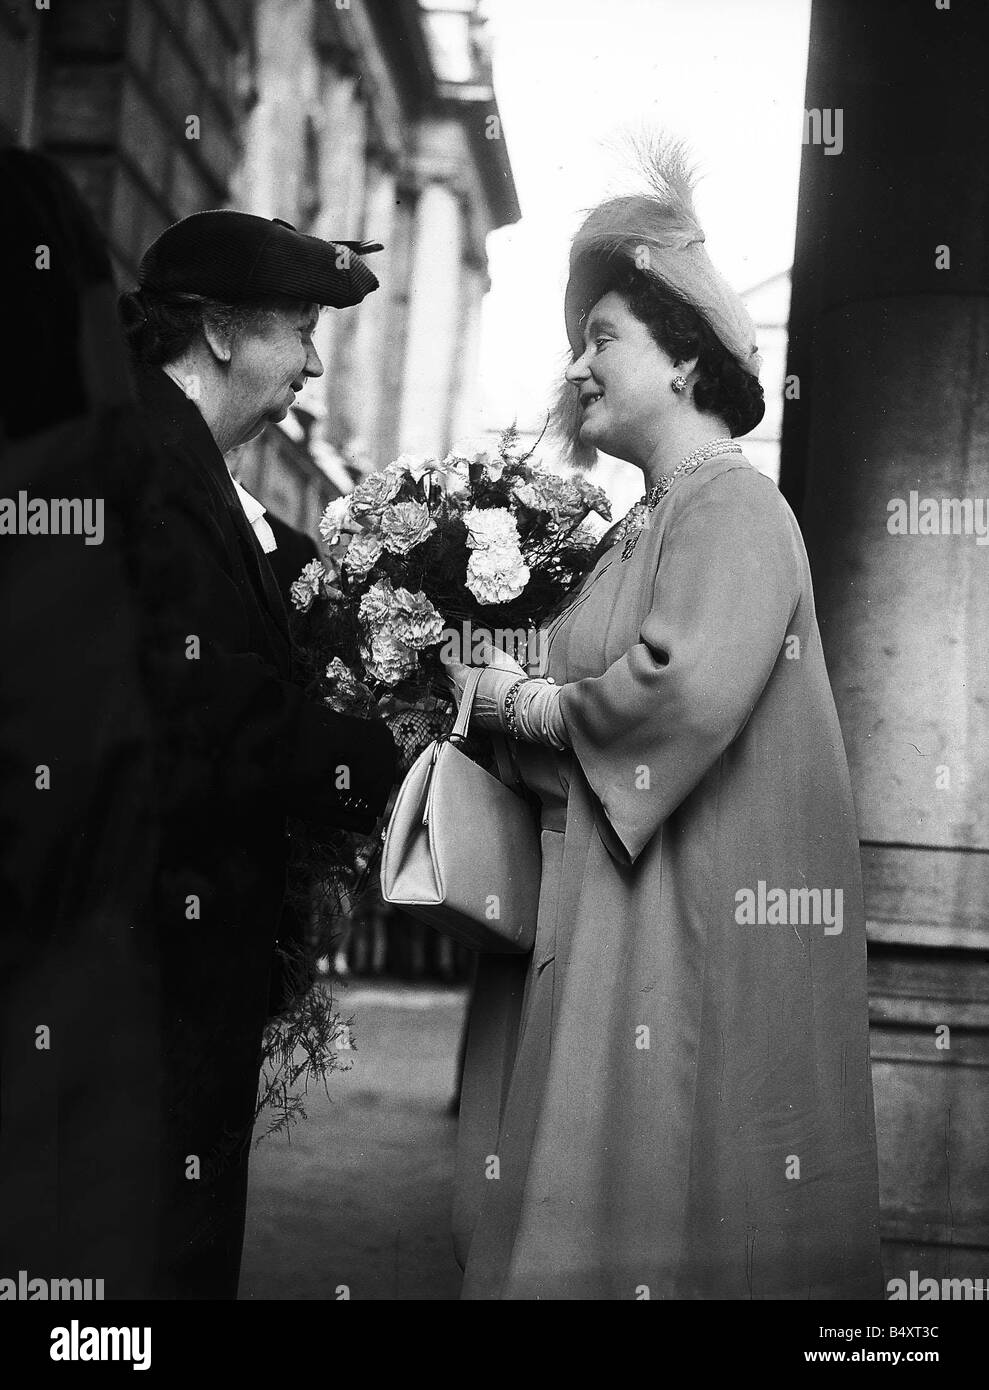 Queen Elizabeth now the Queen Mother receives a bouquet from Rose Riana 71 during her visit to Belfast 1950 Royalty - Stock Image